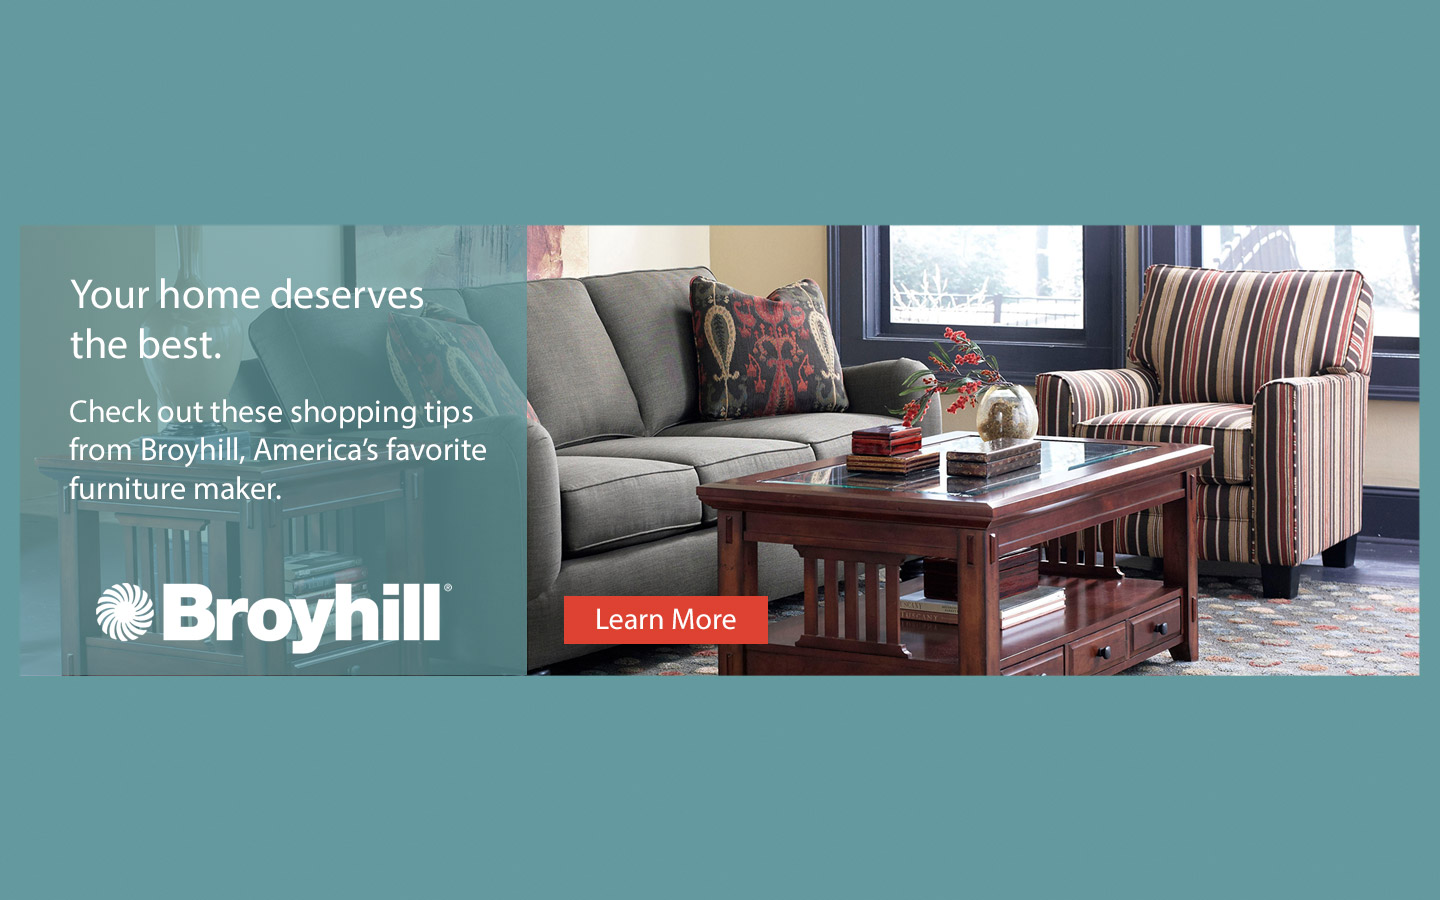 Exceptional ... Broyhill Wood And Upholstery Shopping Tips Q2 2017 ...